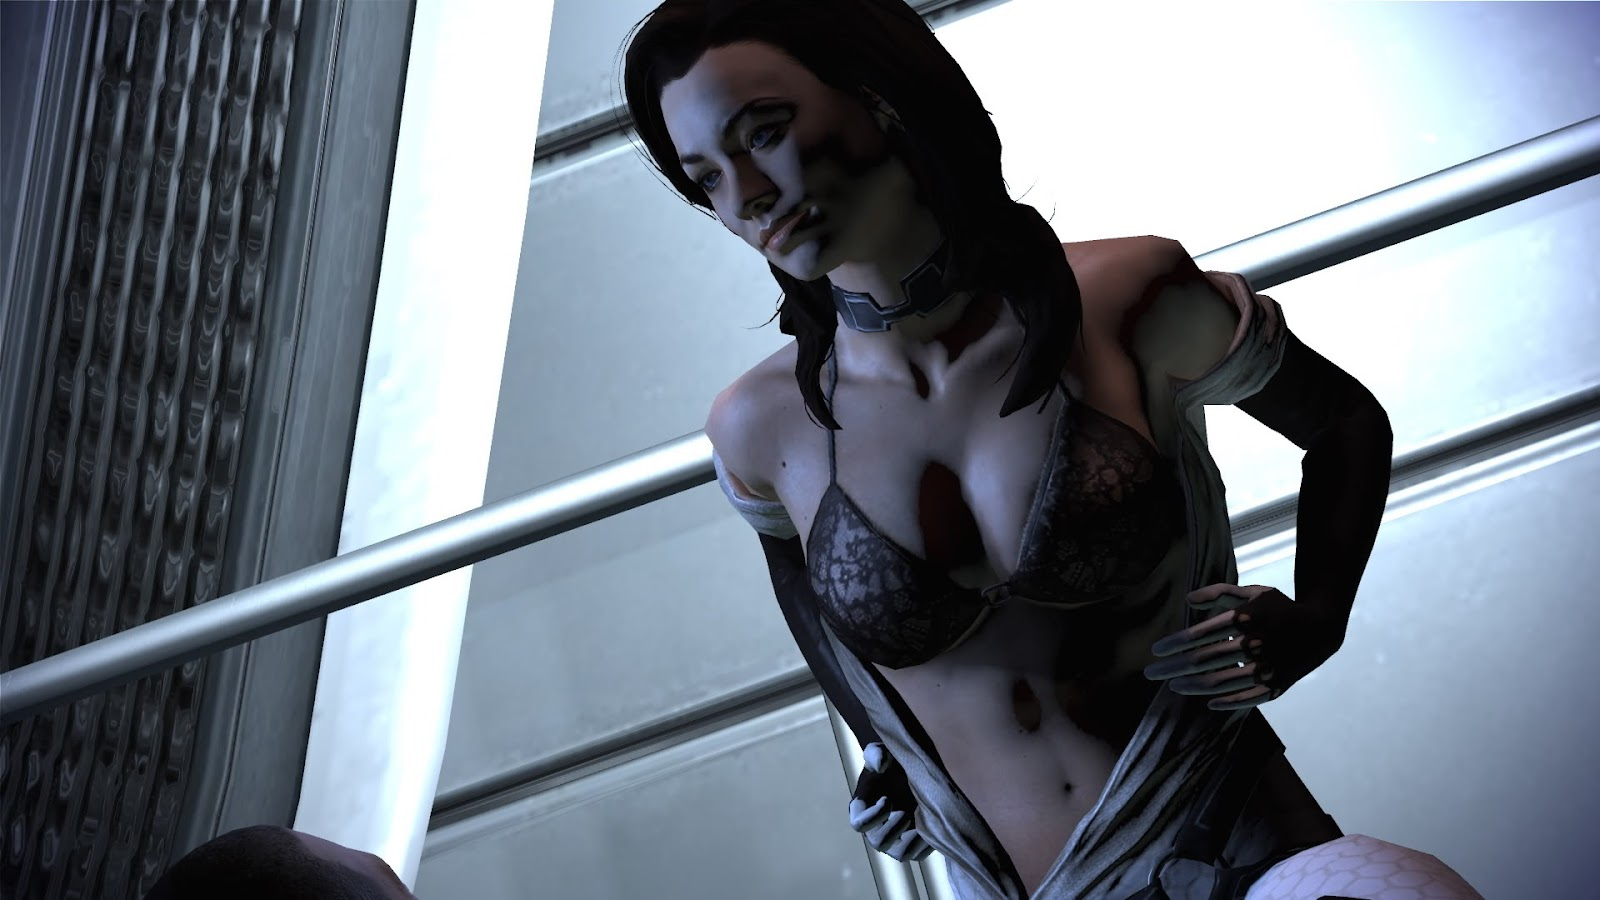 Naked miranda from mass effect hentai tube